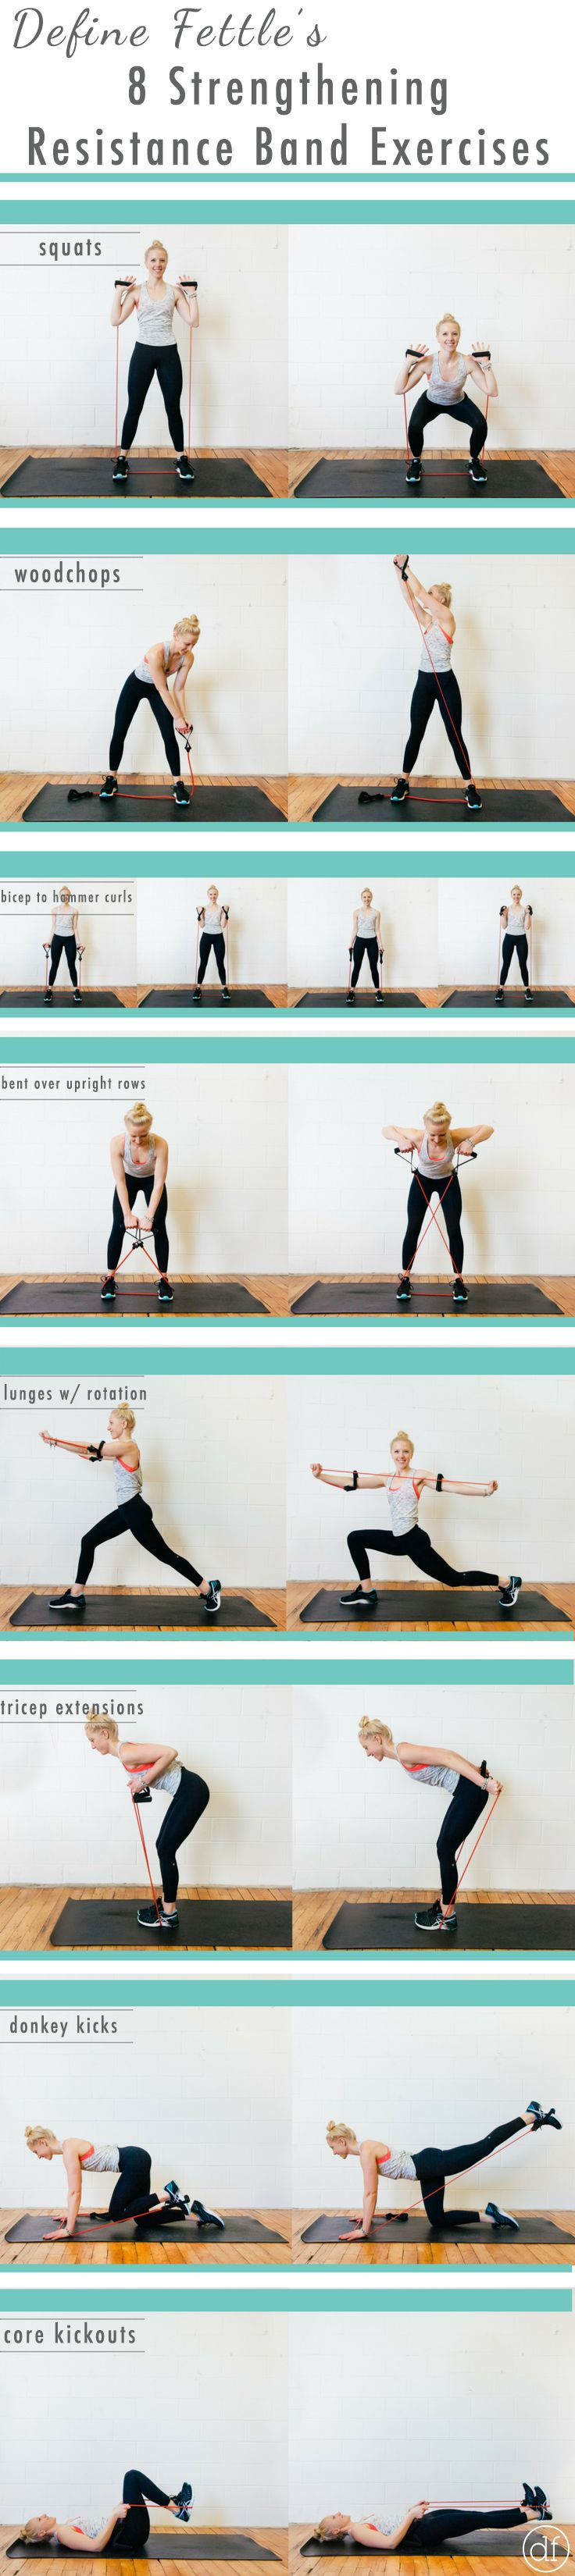 8 strengthening resistance band exercises home blog and 30